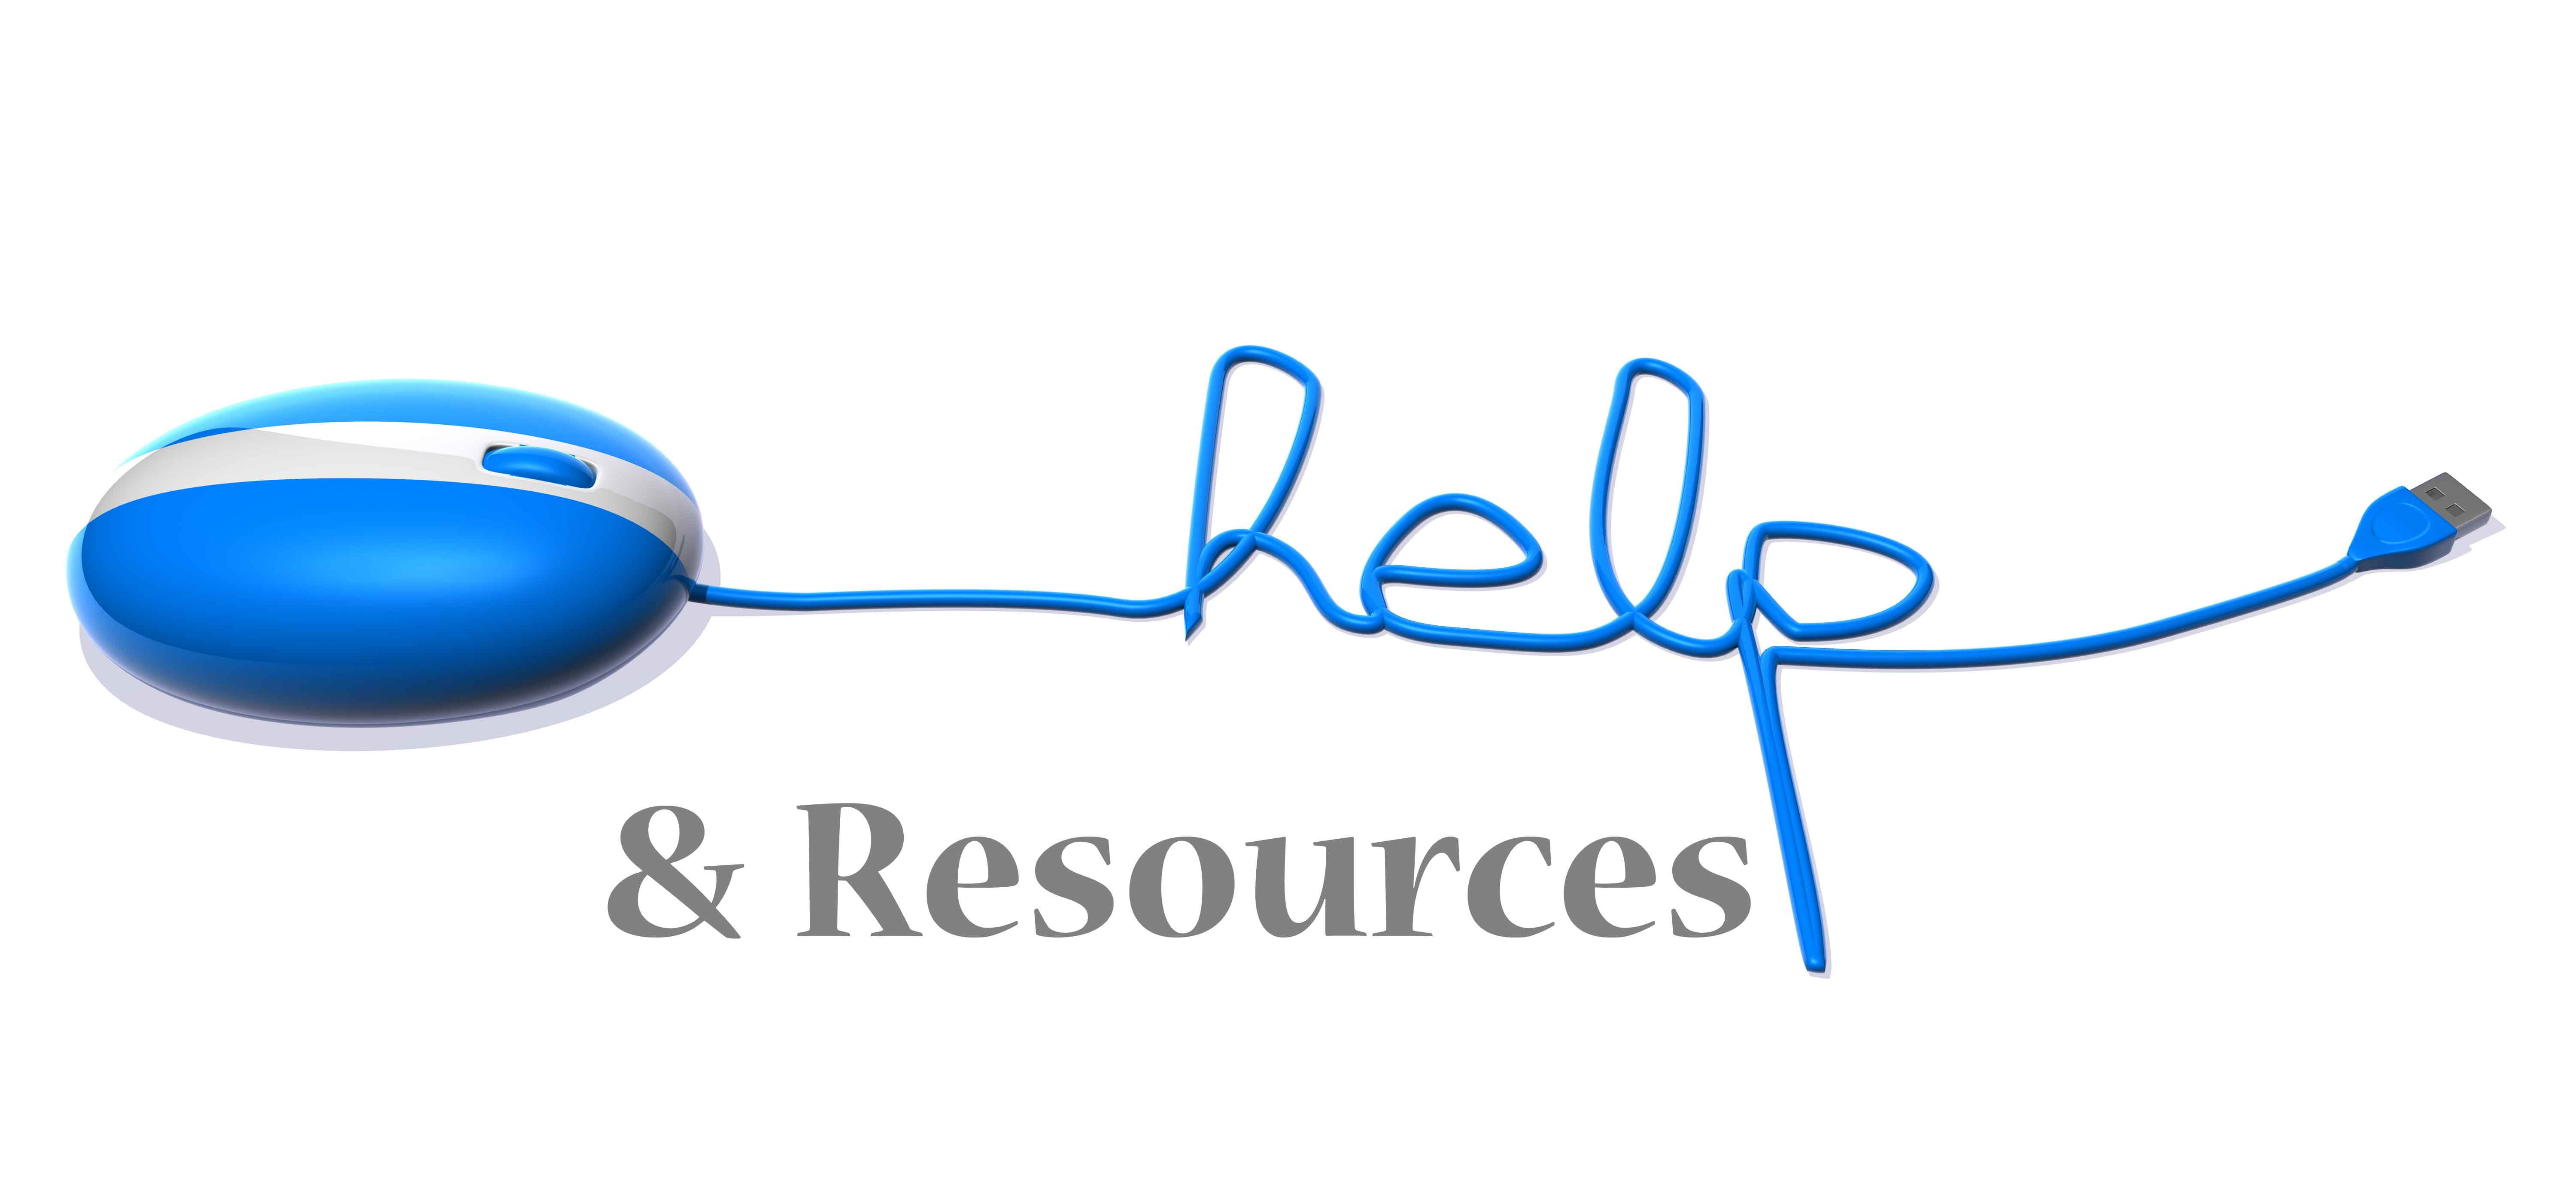 Addtional Resources